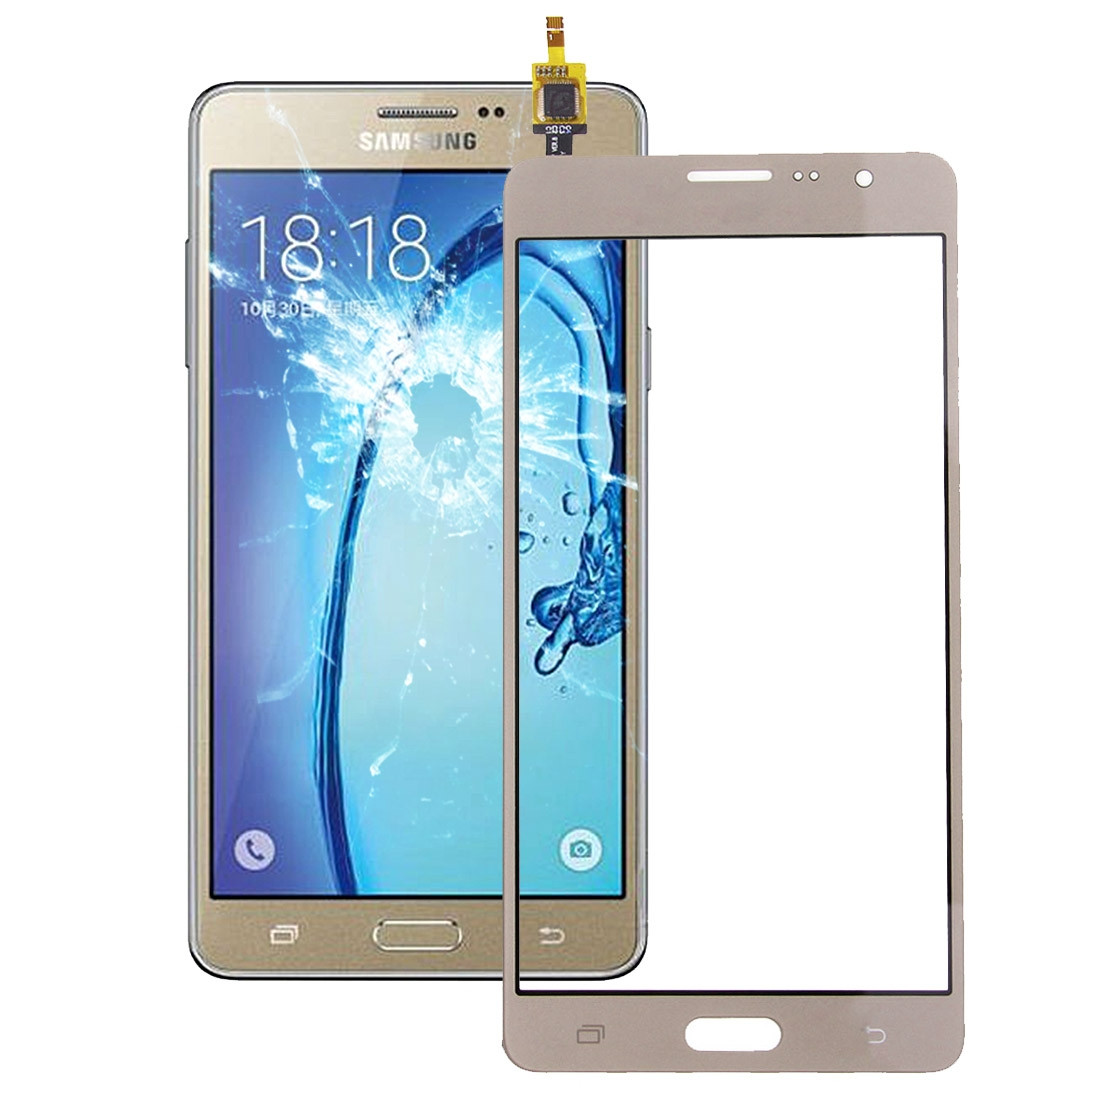 Ipartsachat Cran Tactile Pour Samsung Galaxy On7 G6000 Gold Si03jl1636 08